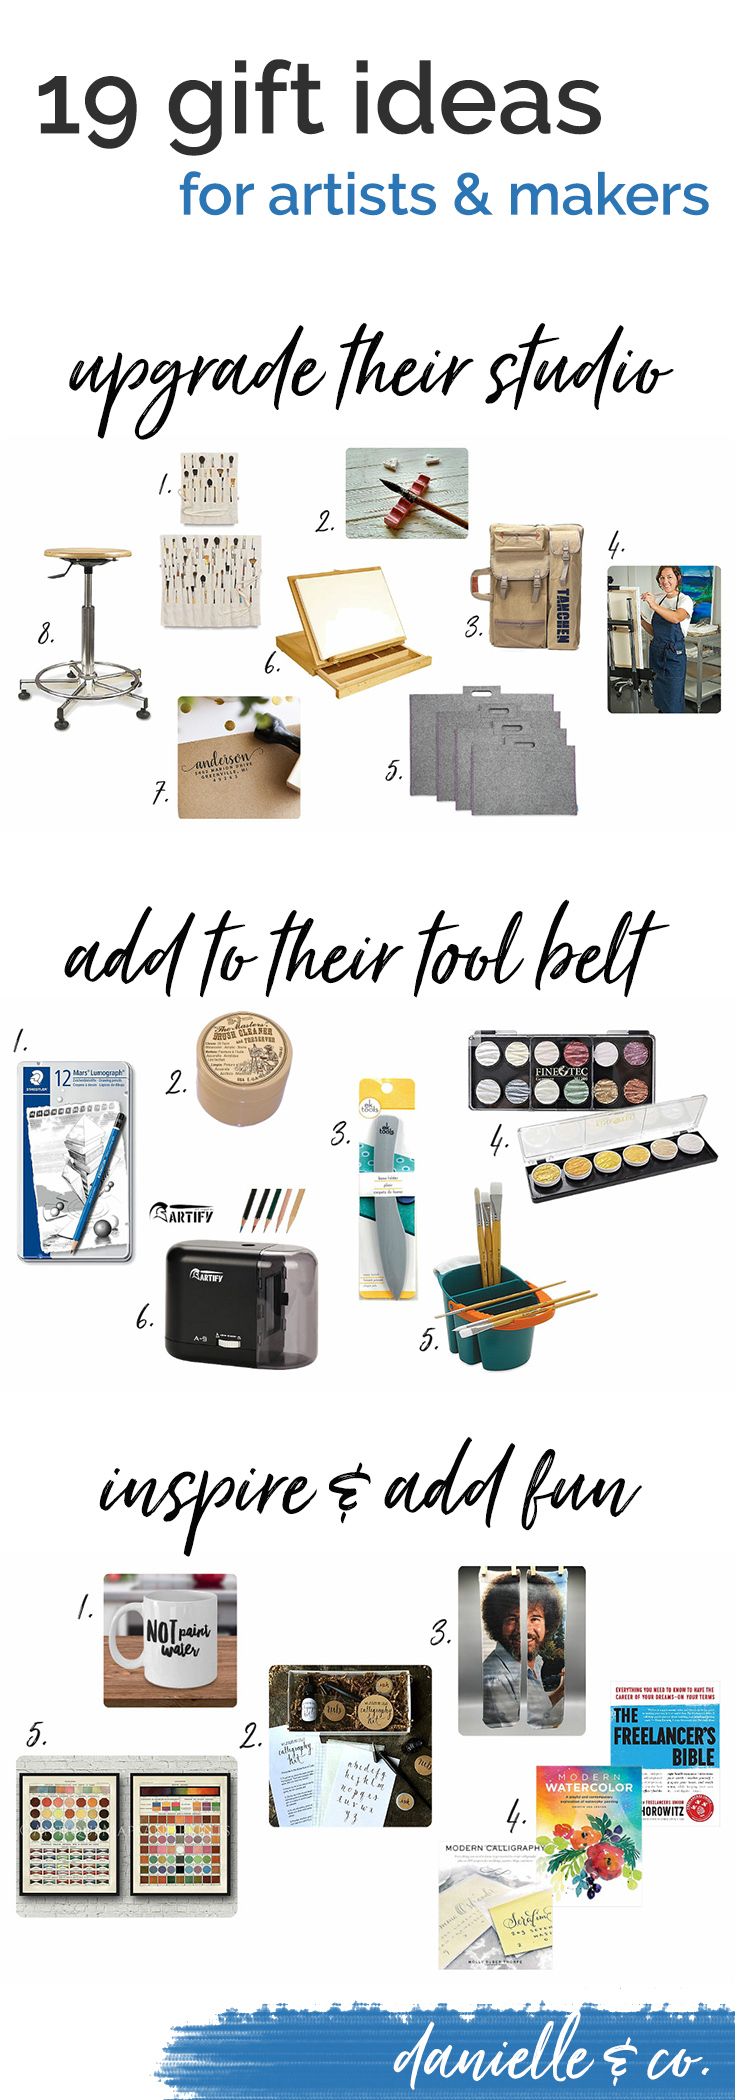 Gift ideas for artists & makers; how to add to their tool belt, upgrade their studio, inspire and add some fun this holiday season! From danielle & co.